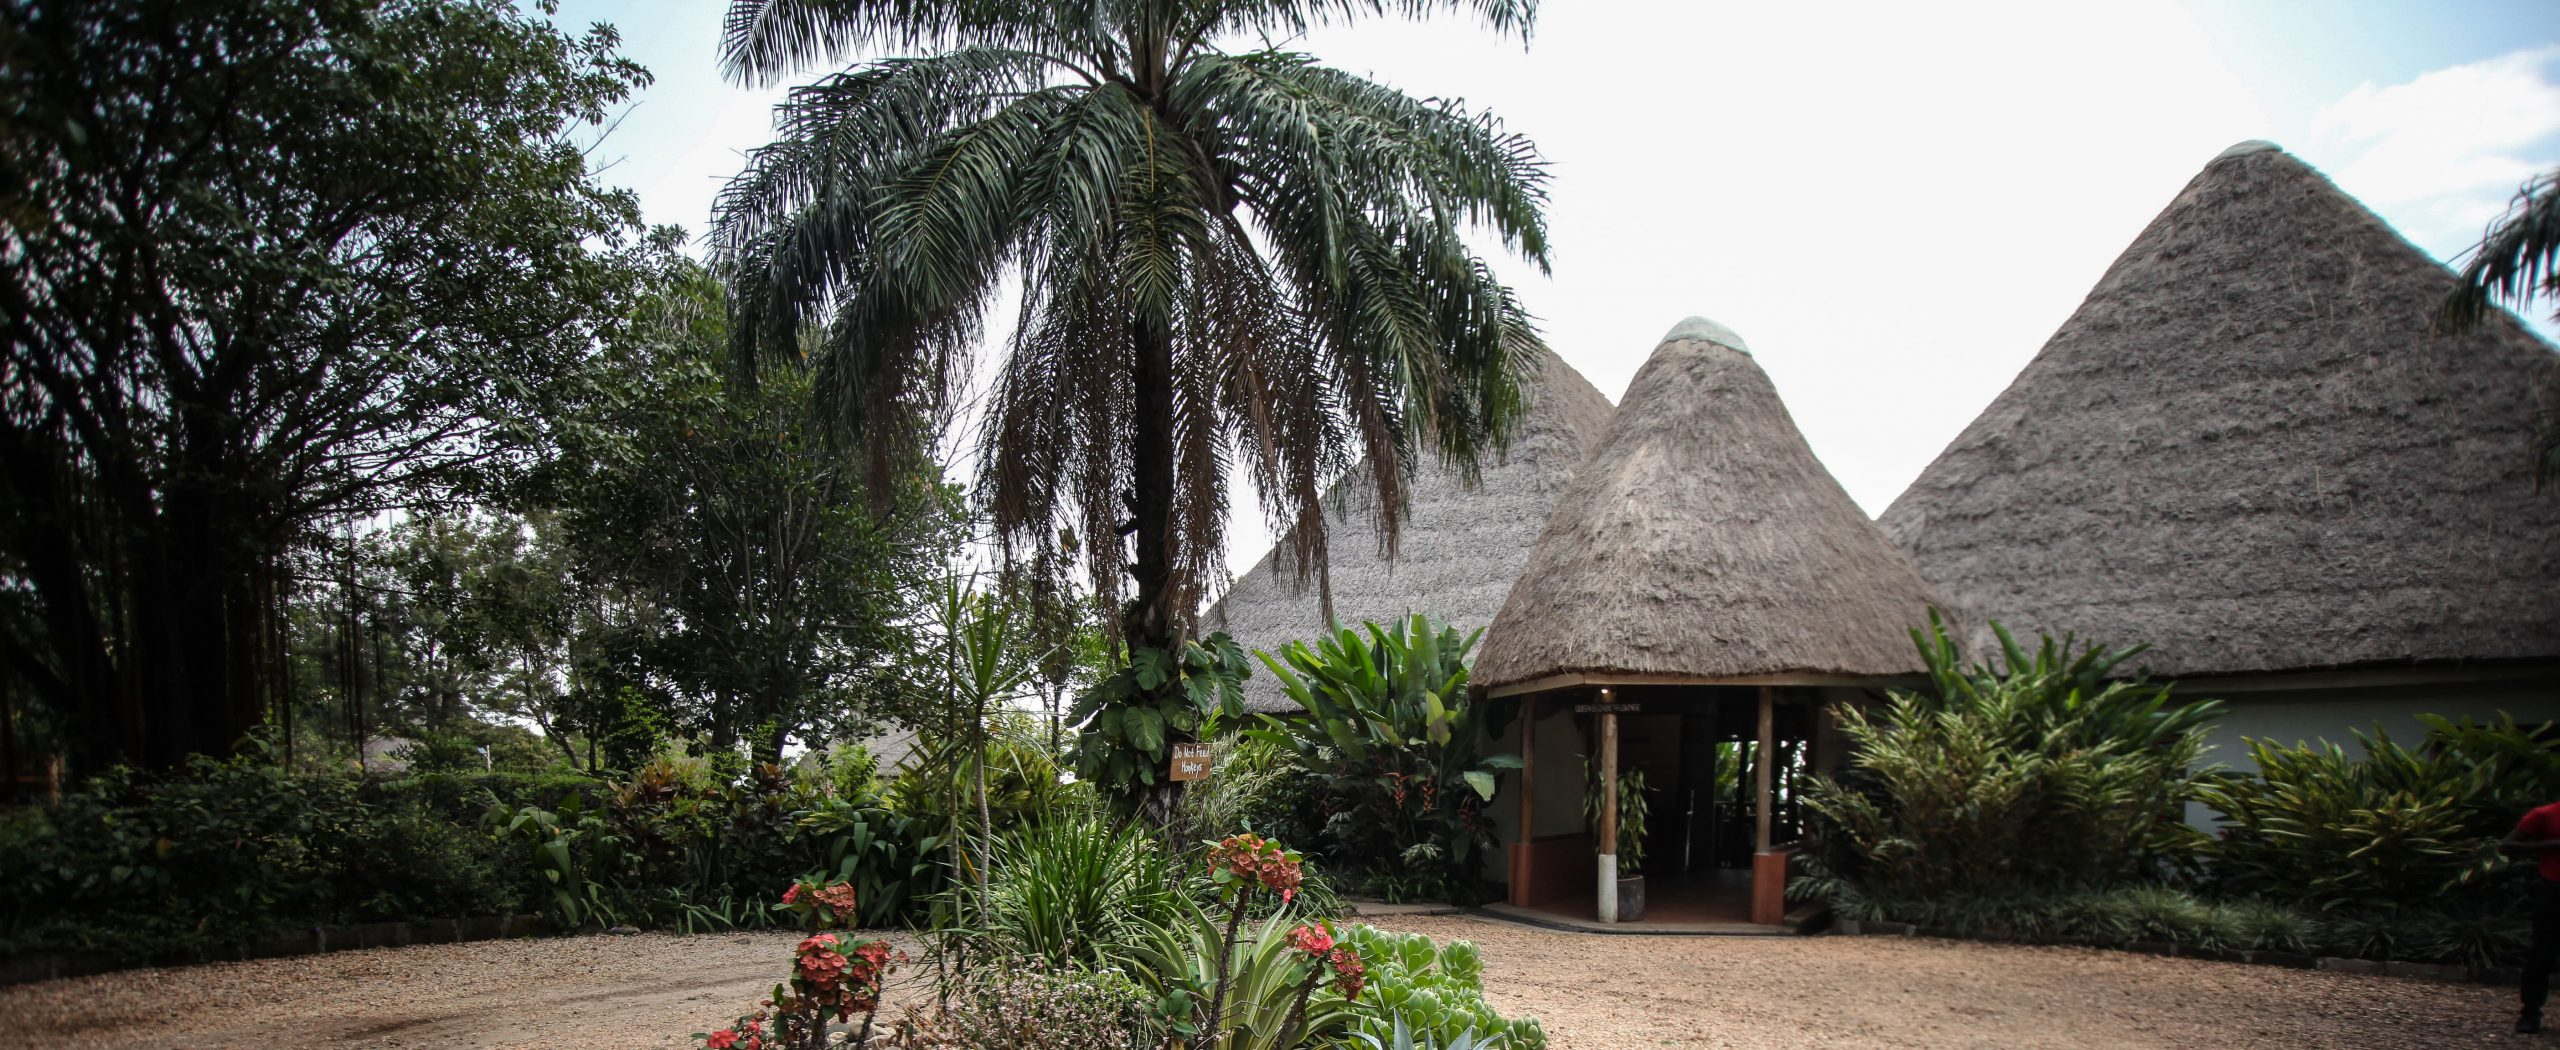 Overview of Elephant Hab Lodge